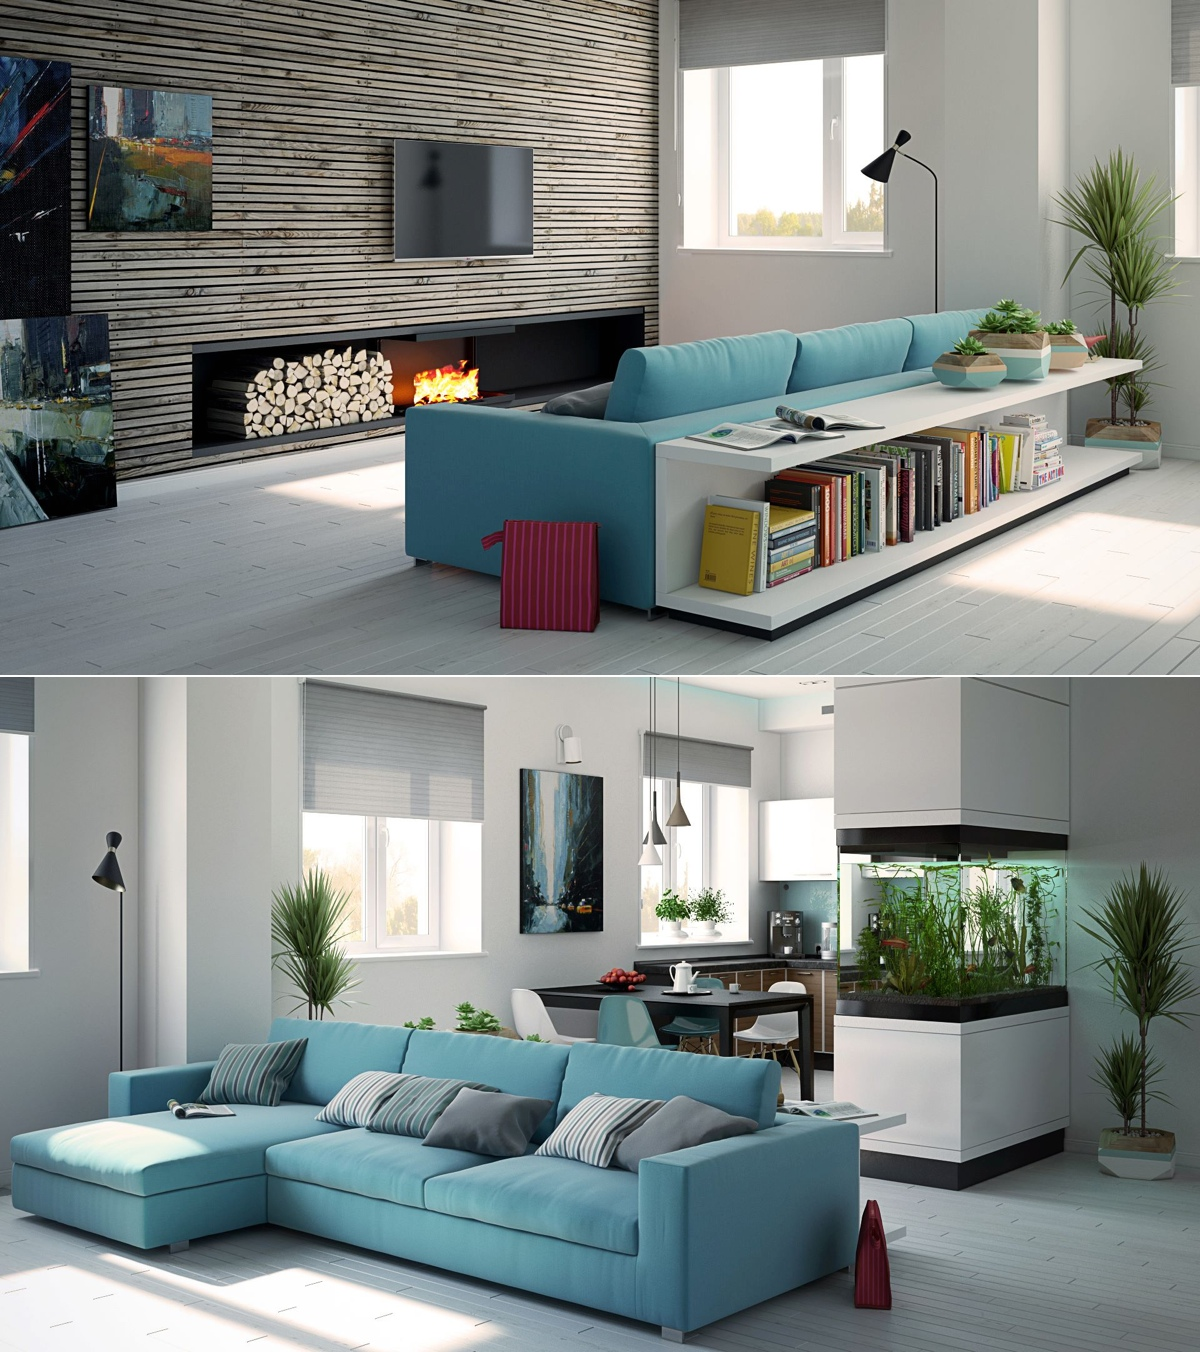 Awesomely stylish urban living rooms - Idee deco gezellige lounge ...